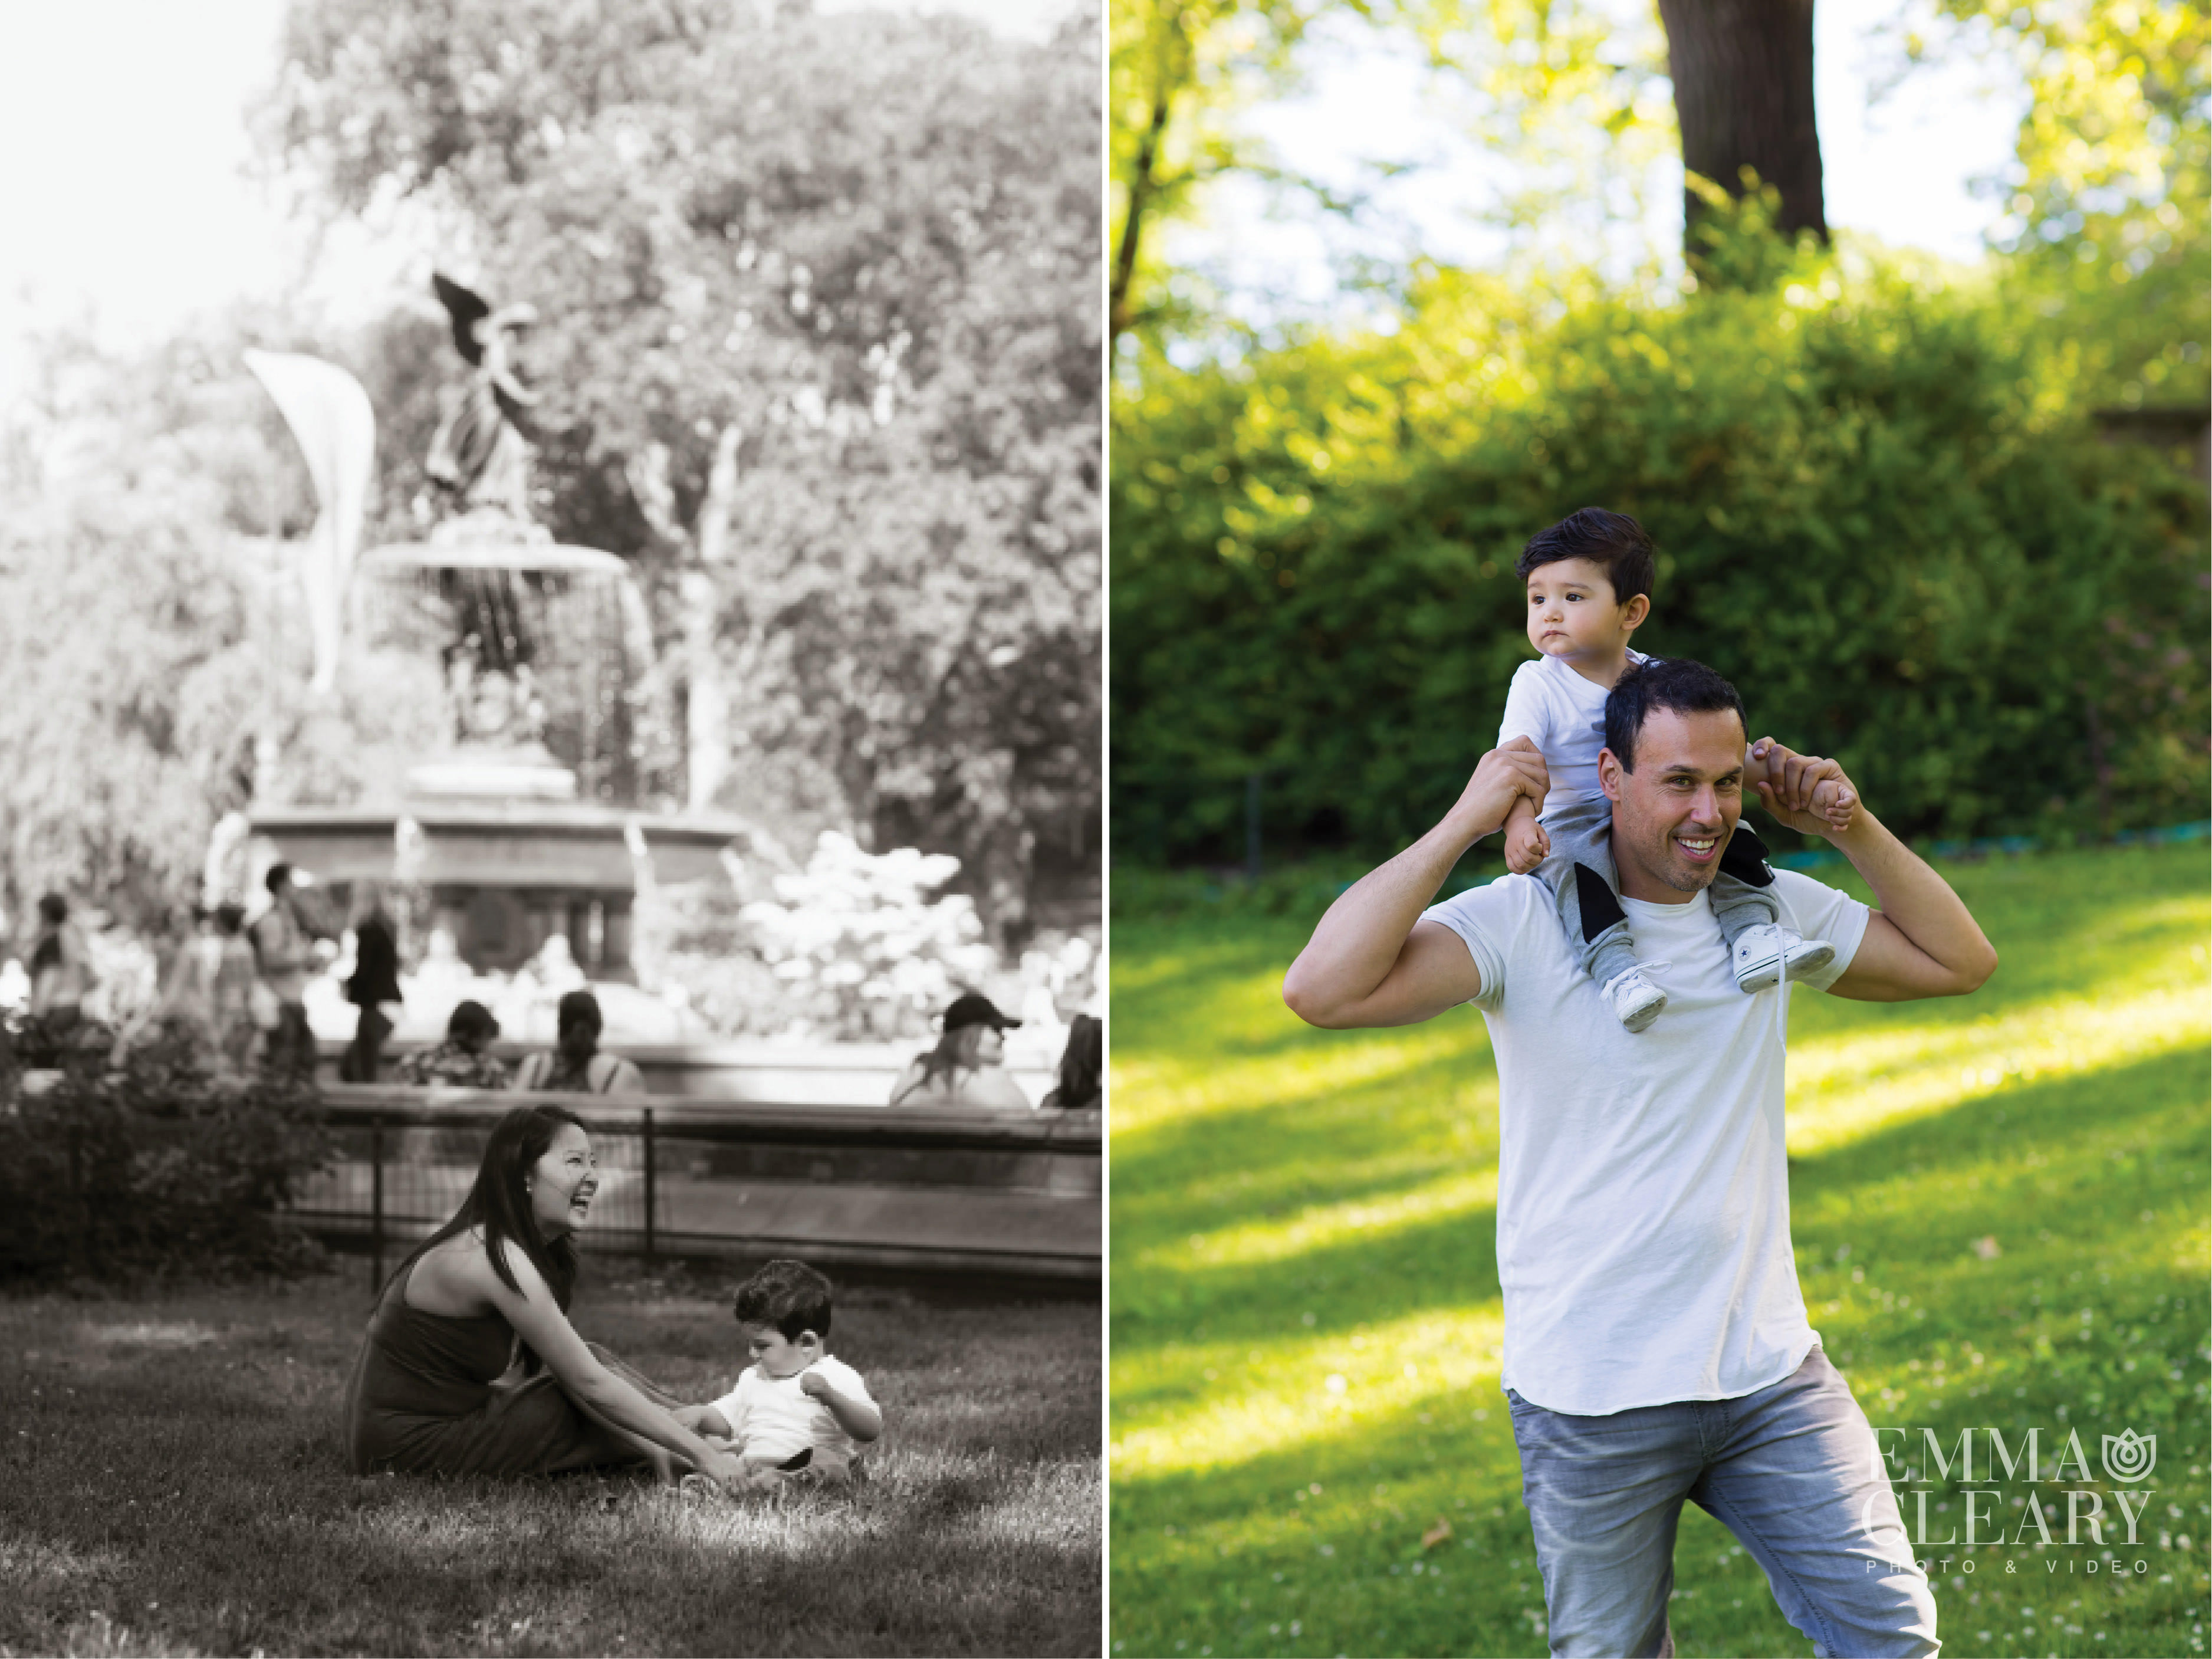 Emma_cleary_photography family shoot central park4